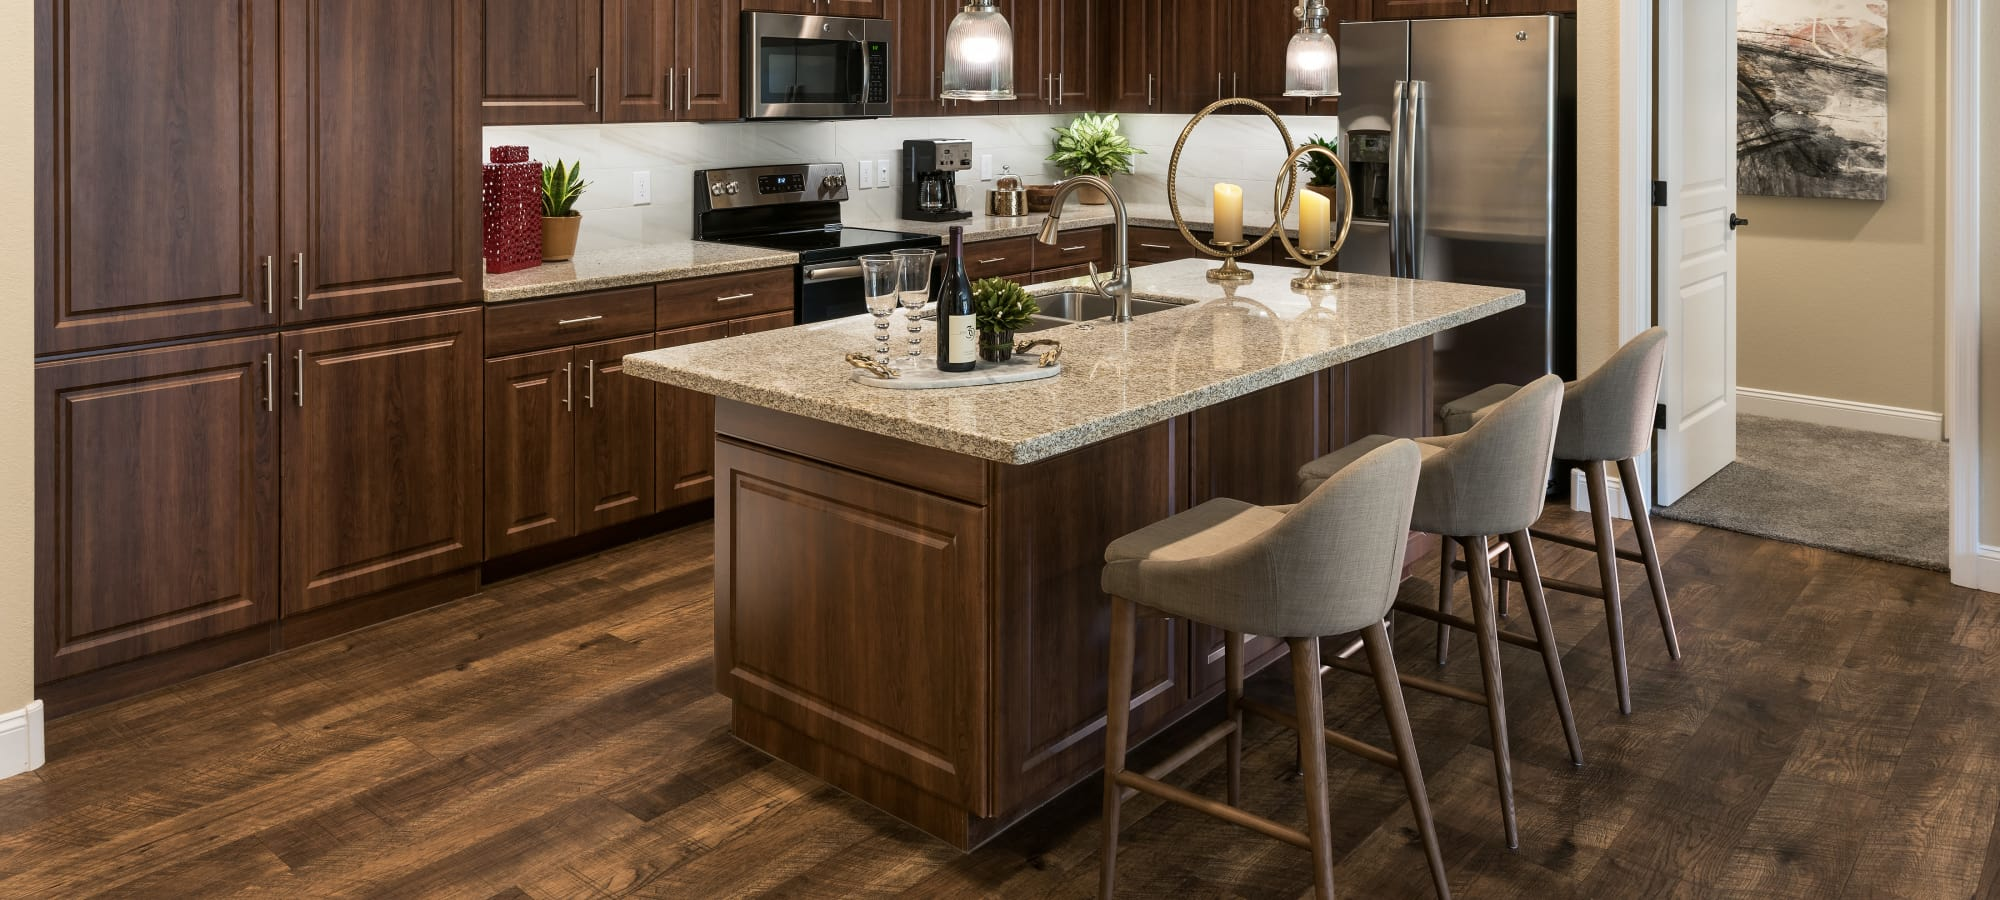 Luxurious kitchen island at San Portales in Scottsdale, Arizona